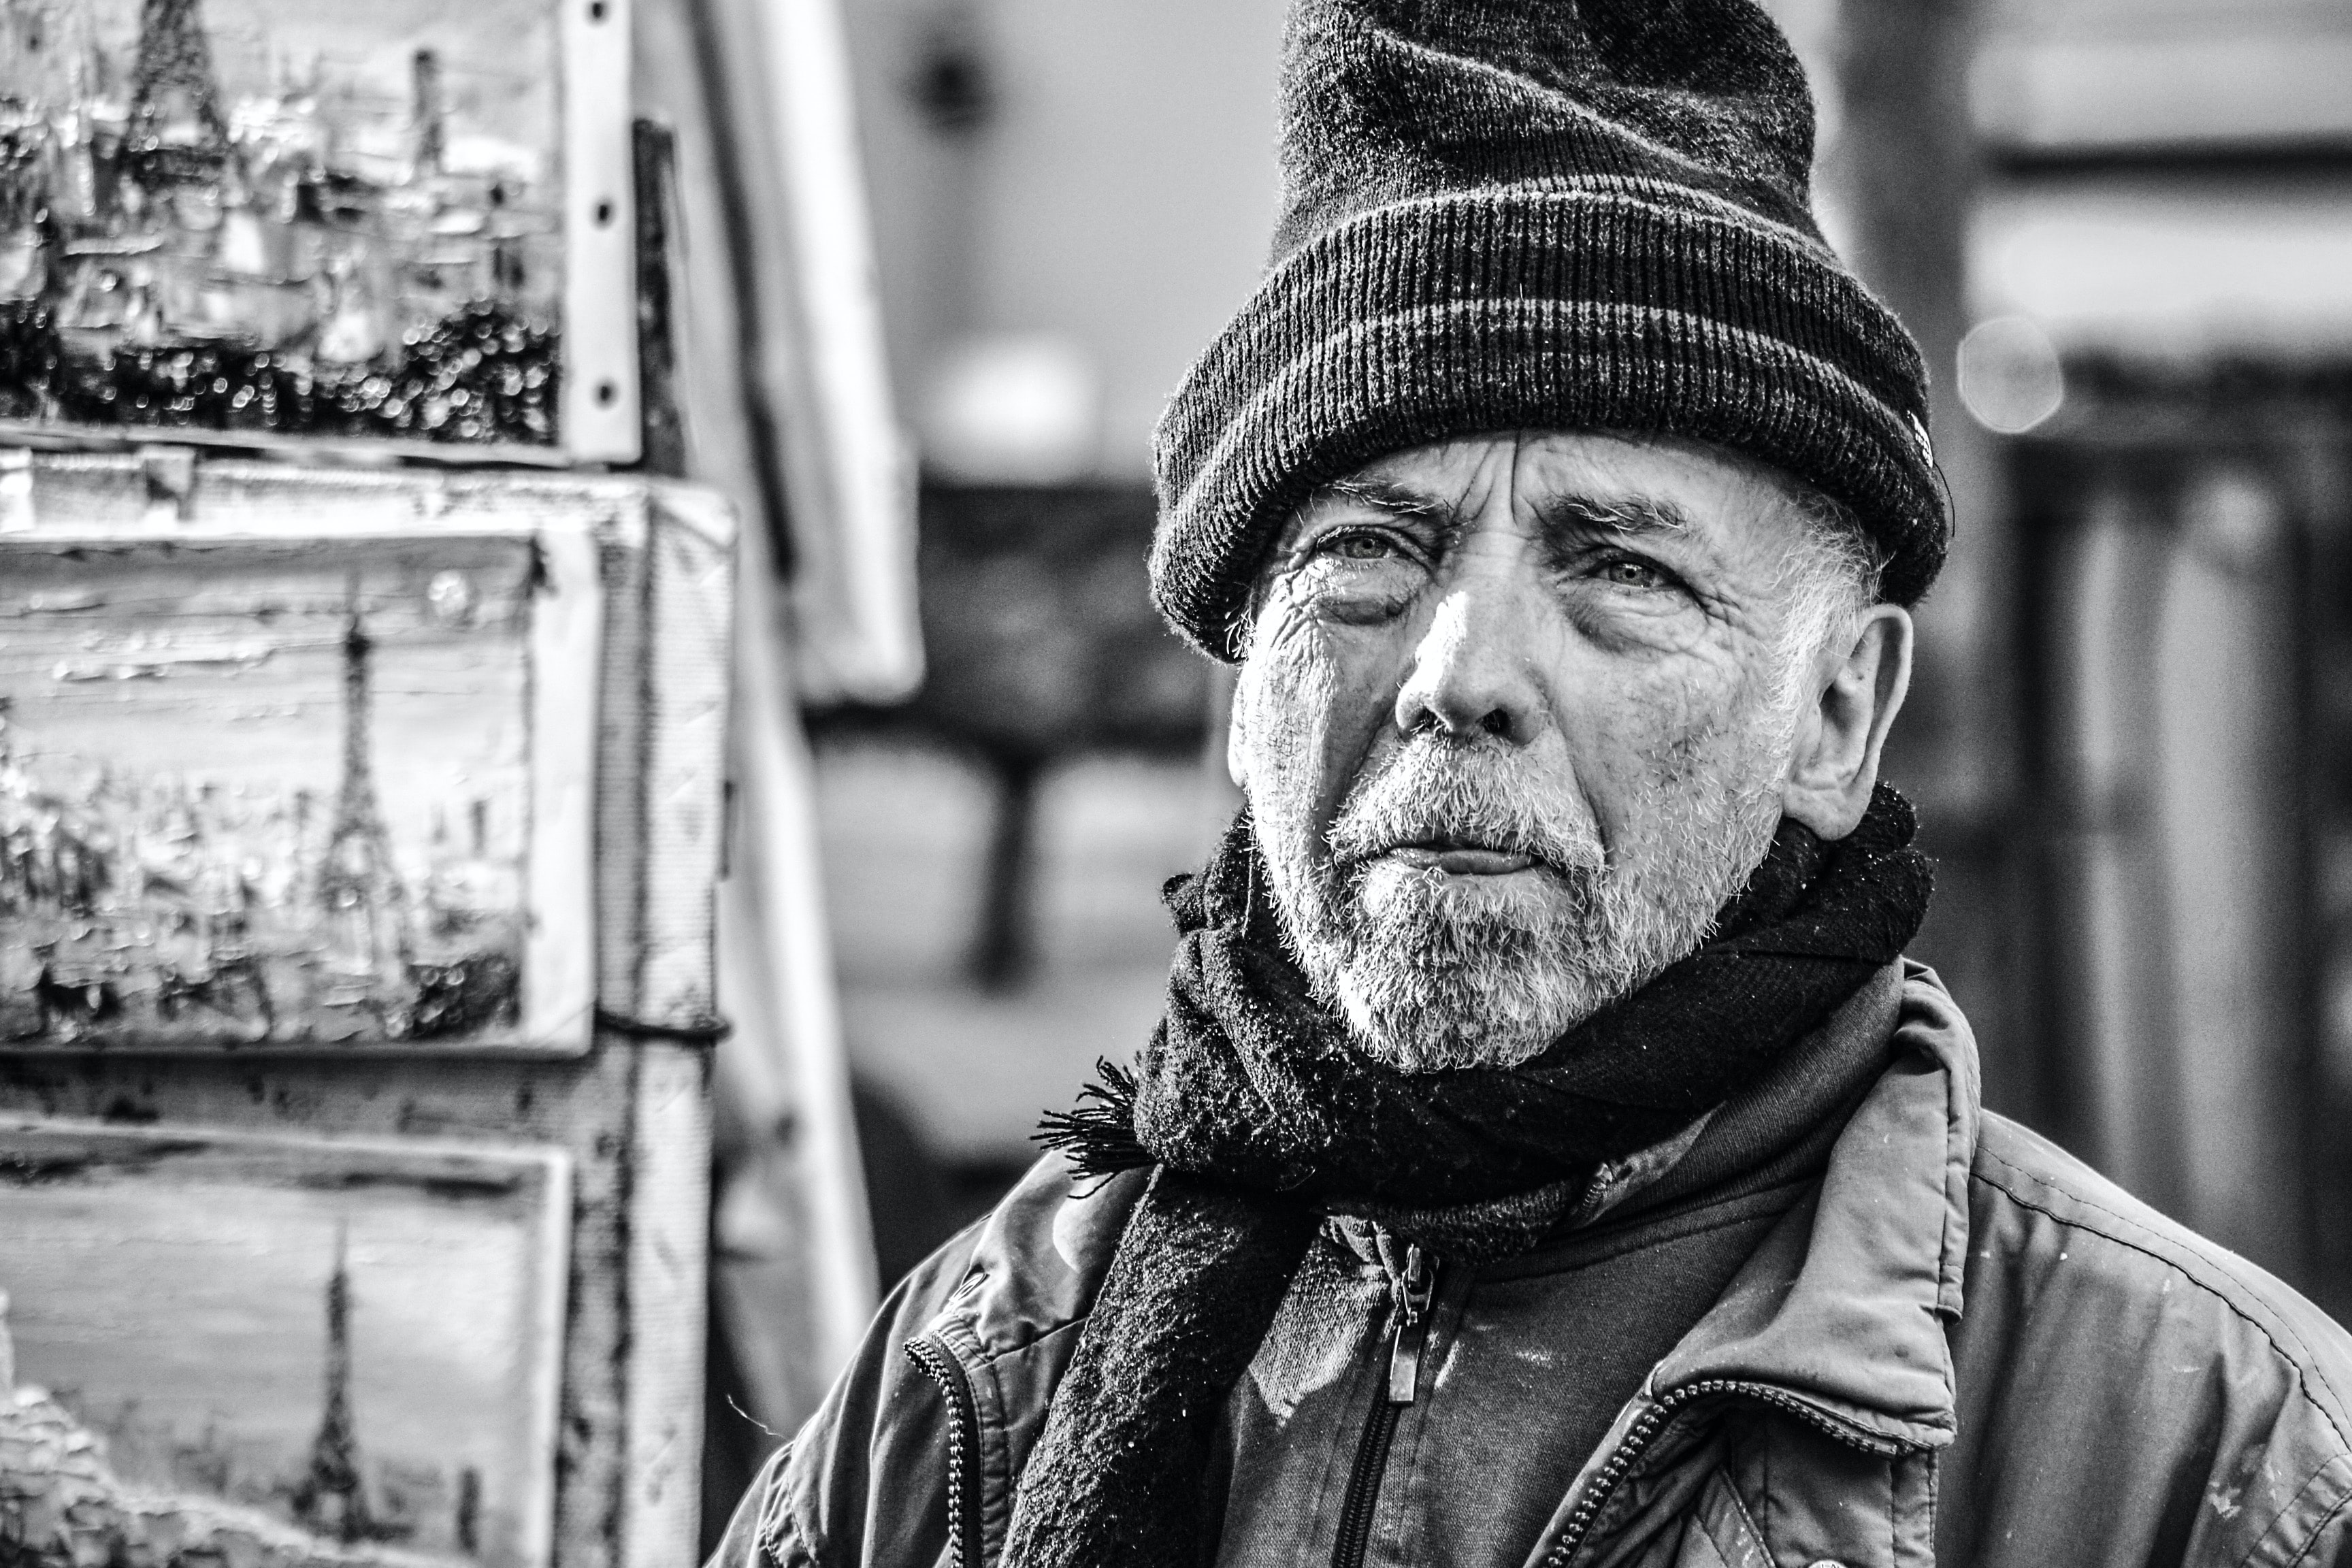 grayscale photography of man with beanie cap and scarf